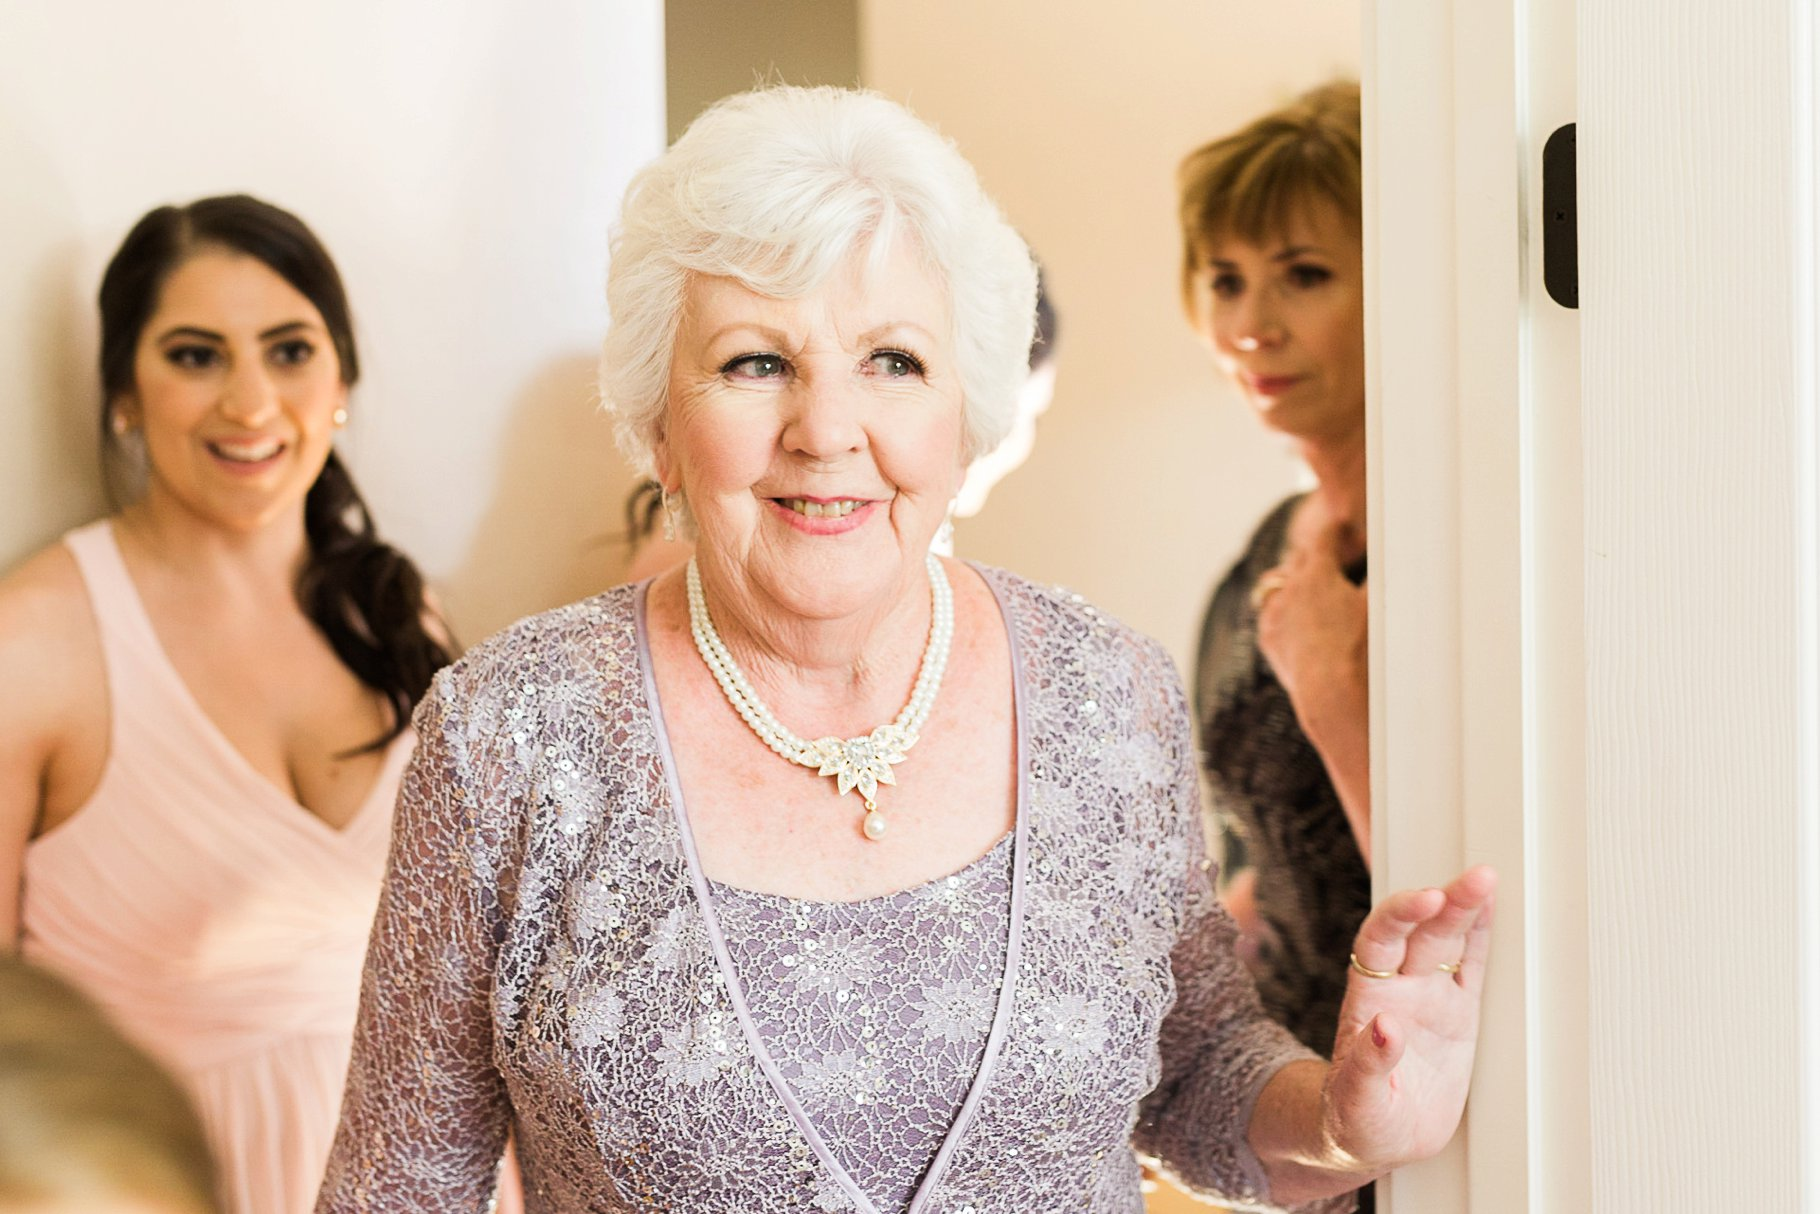 Grandma seeing bride for the first time